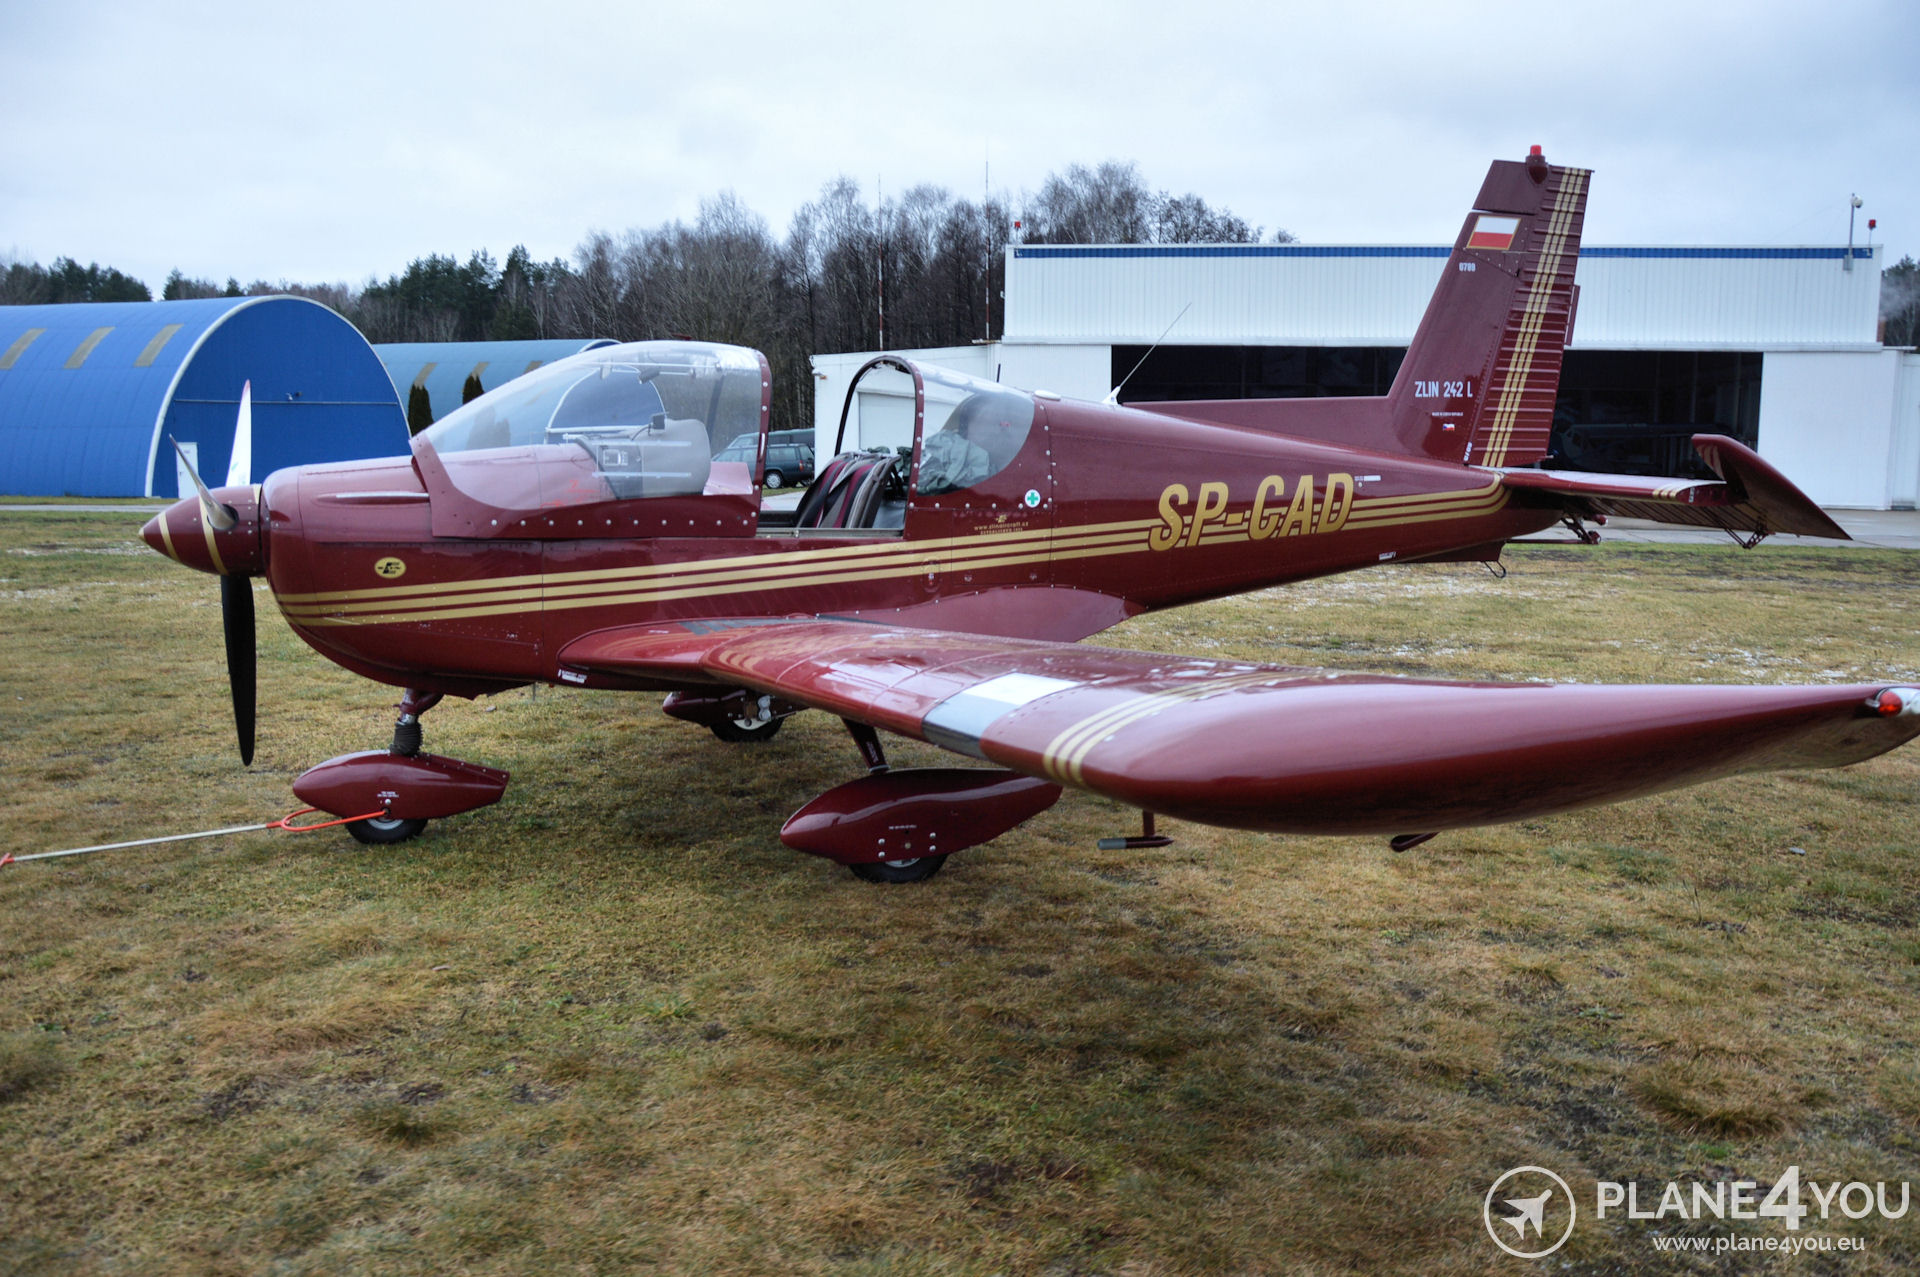 45  ZLIN Z-242L SP-CAD | Sold aircraft | Plane4You Aircraft